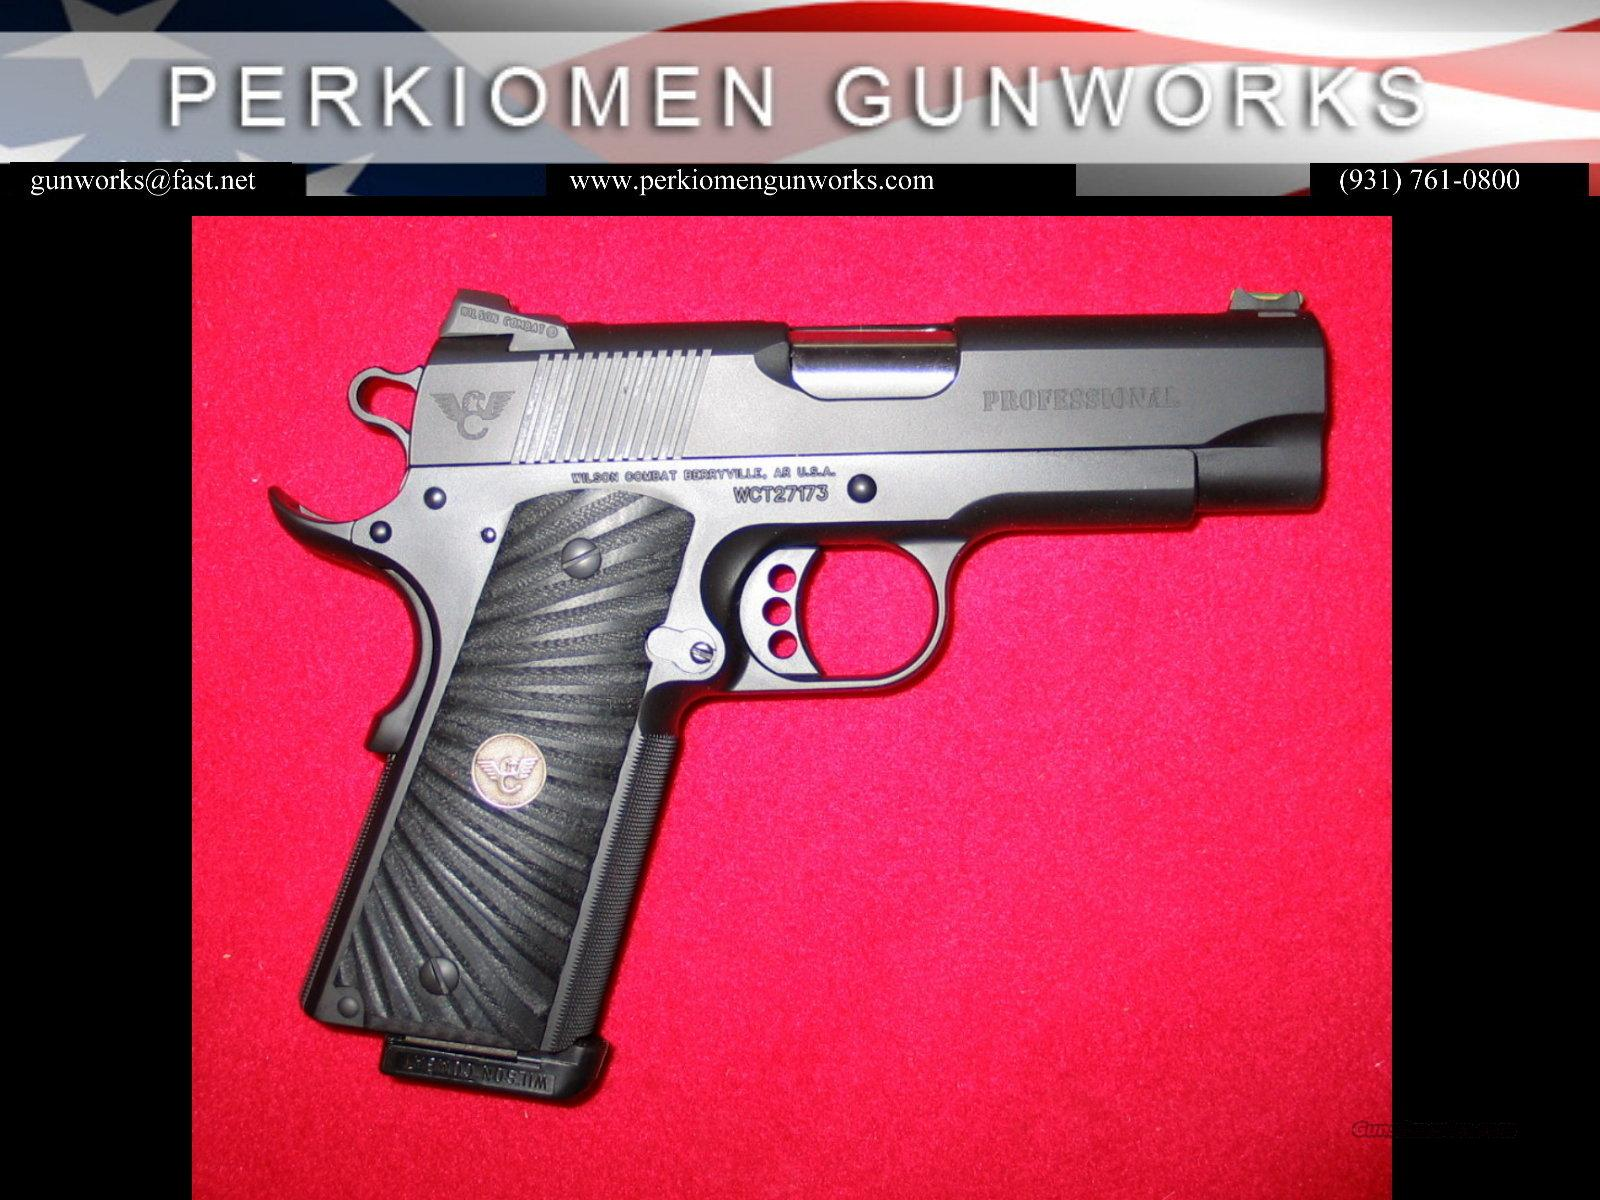 "Professional, .38 Super, 4"", w/Options – New in Box.  Guns > Pistols > Wilson Combat Pistols"